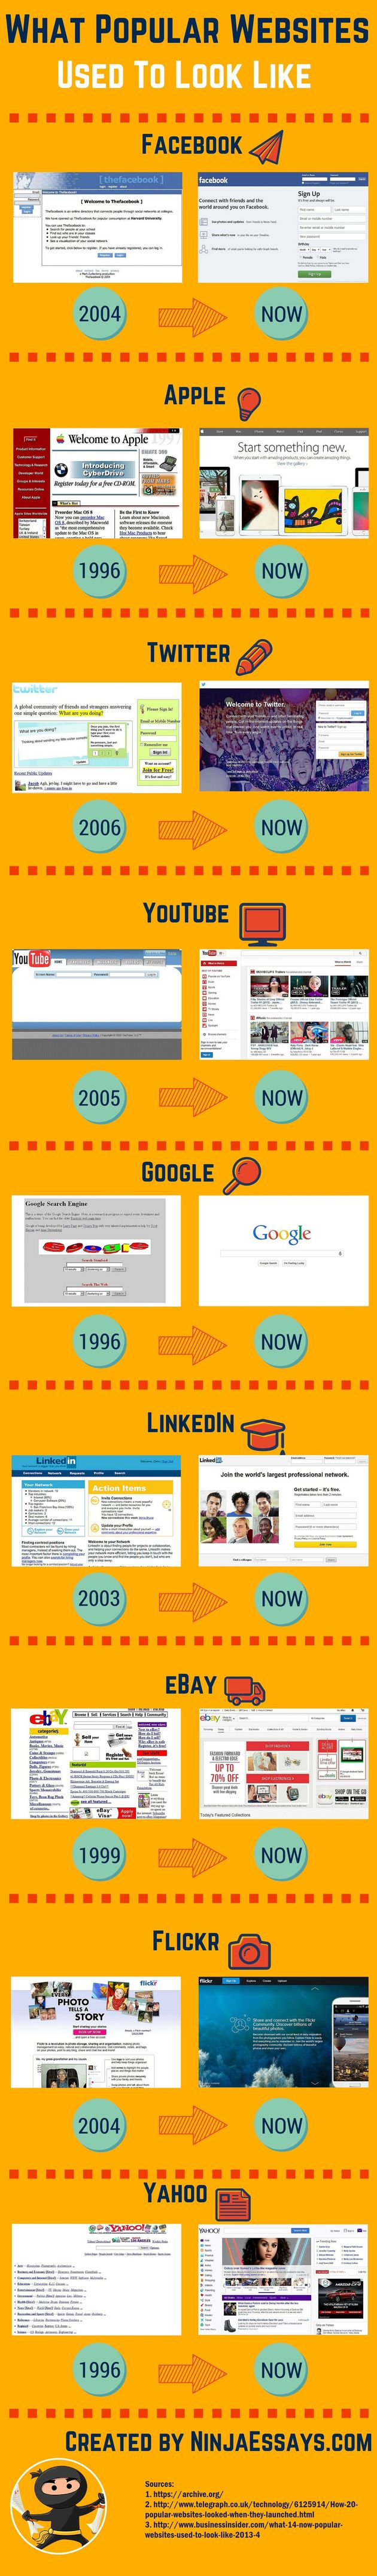 infographic populaire oude websites